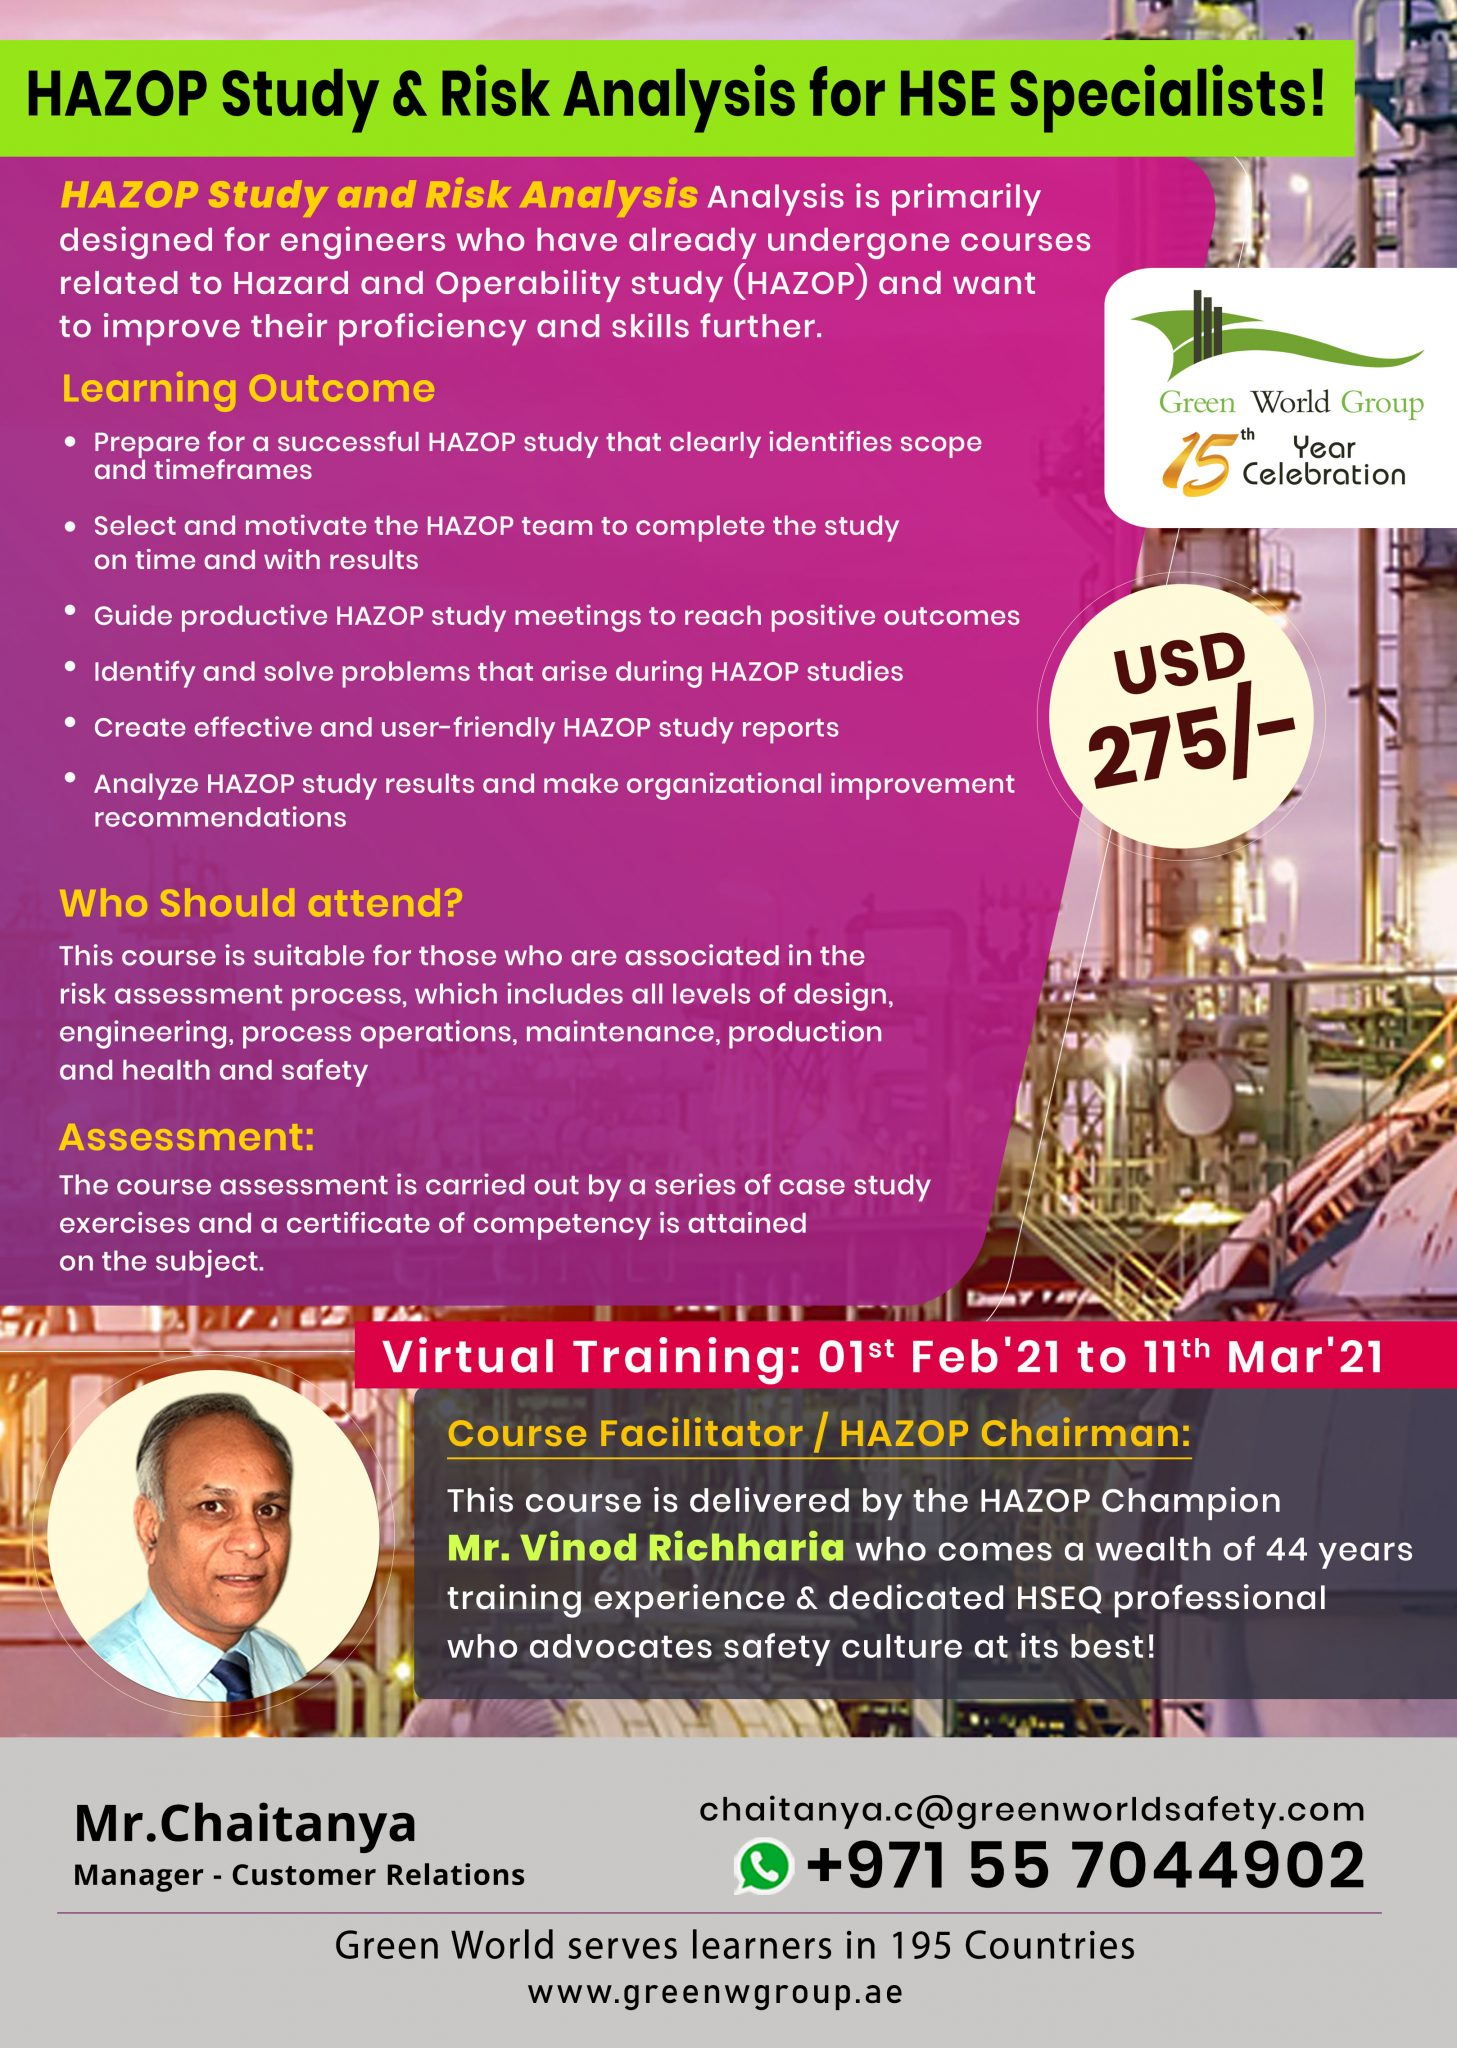 One-Time Offer On HAZOP Study & Risk Analysis For HSE Specialists